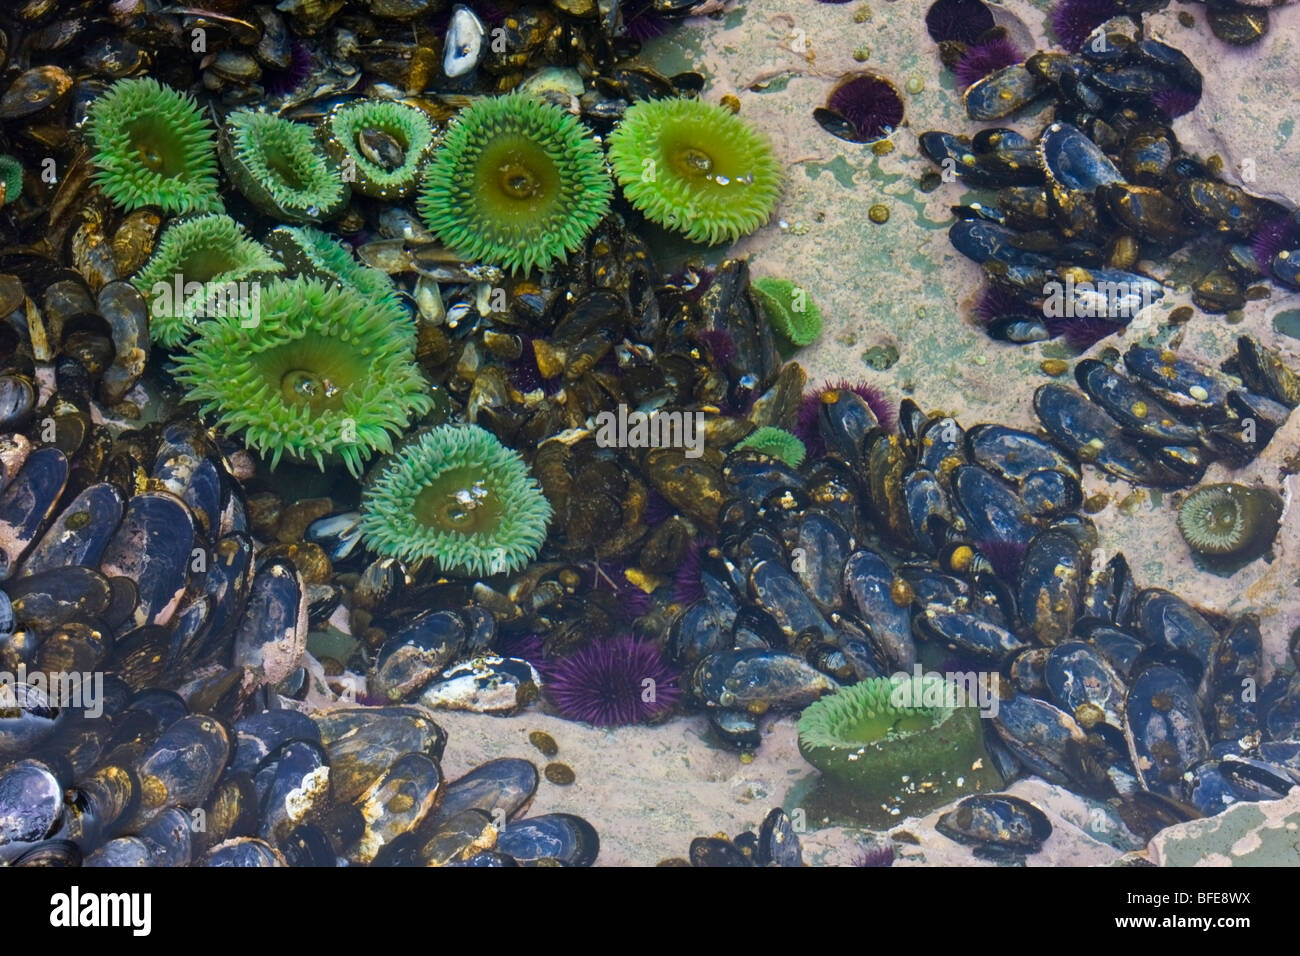 A tidal pool filled with sea anemones and mussels on the West Coast Trail on Vancouver Island, British Columbia, - Stock Image